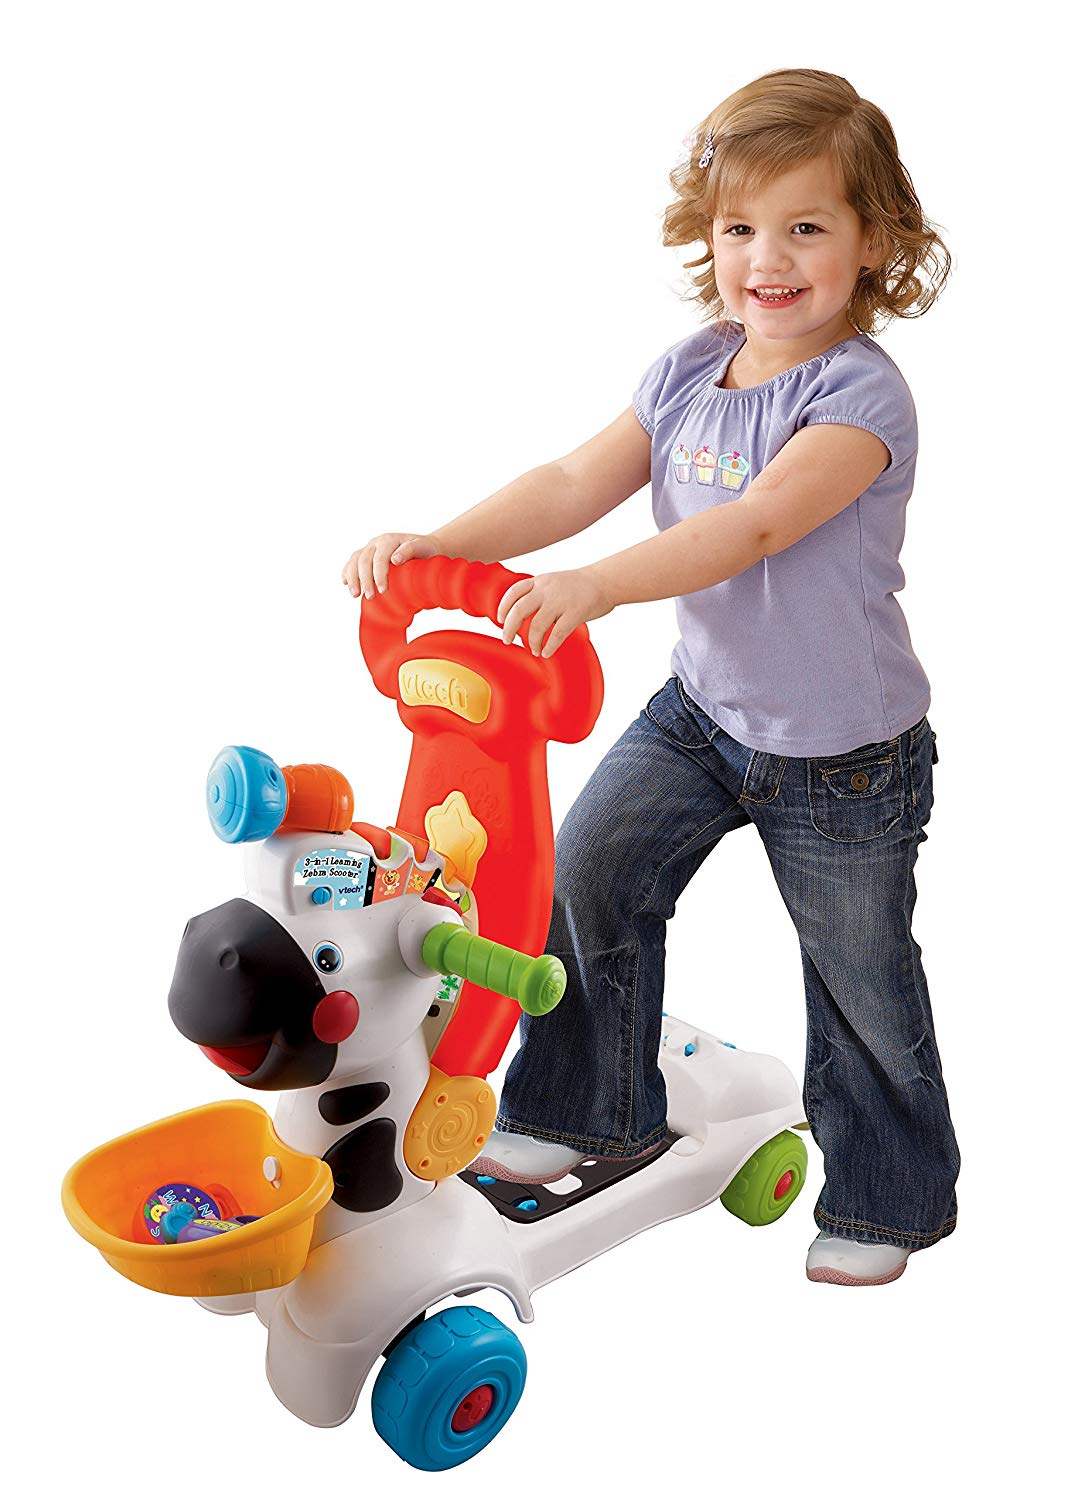 Vtech 3 in 1 Learning Zebra Scooter Ride On (White/Pink ...